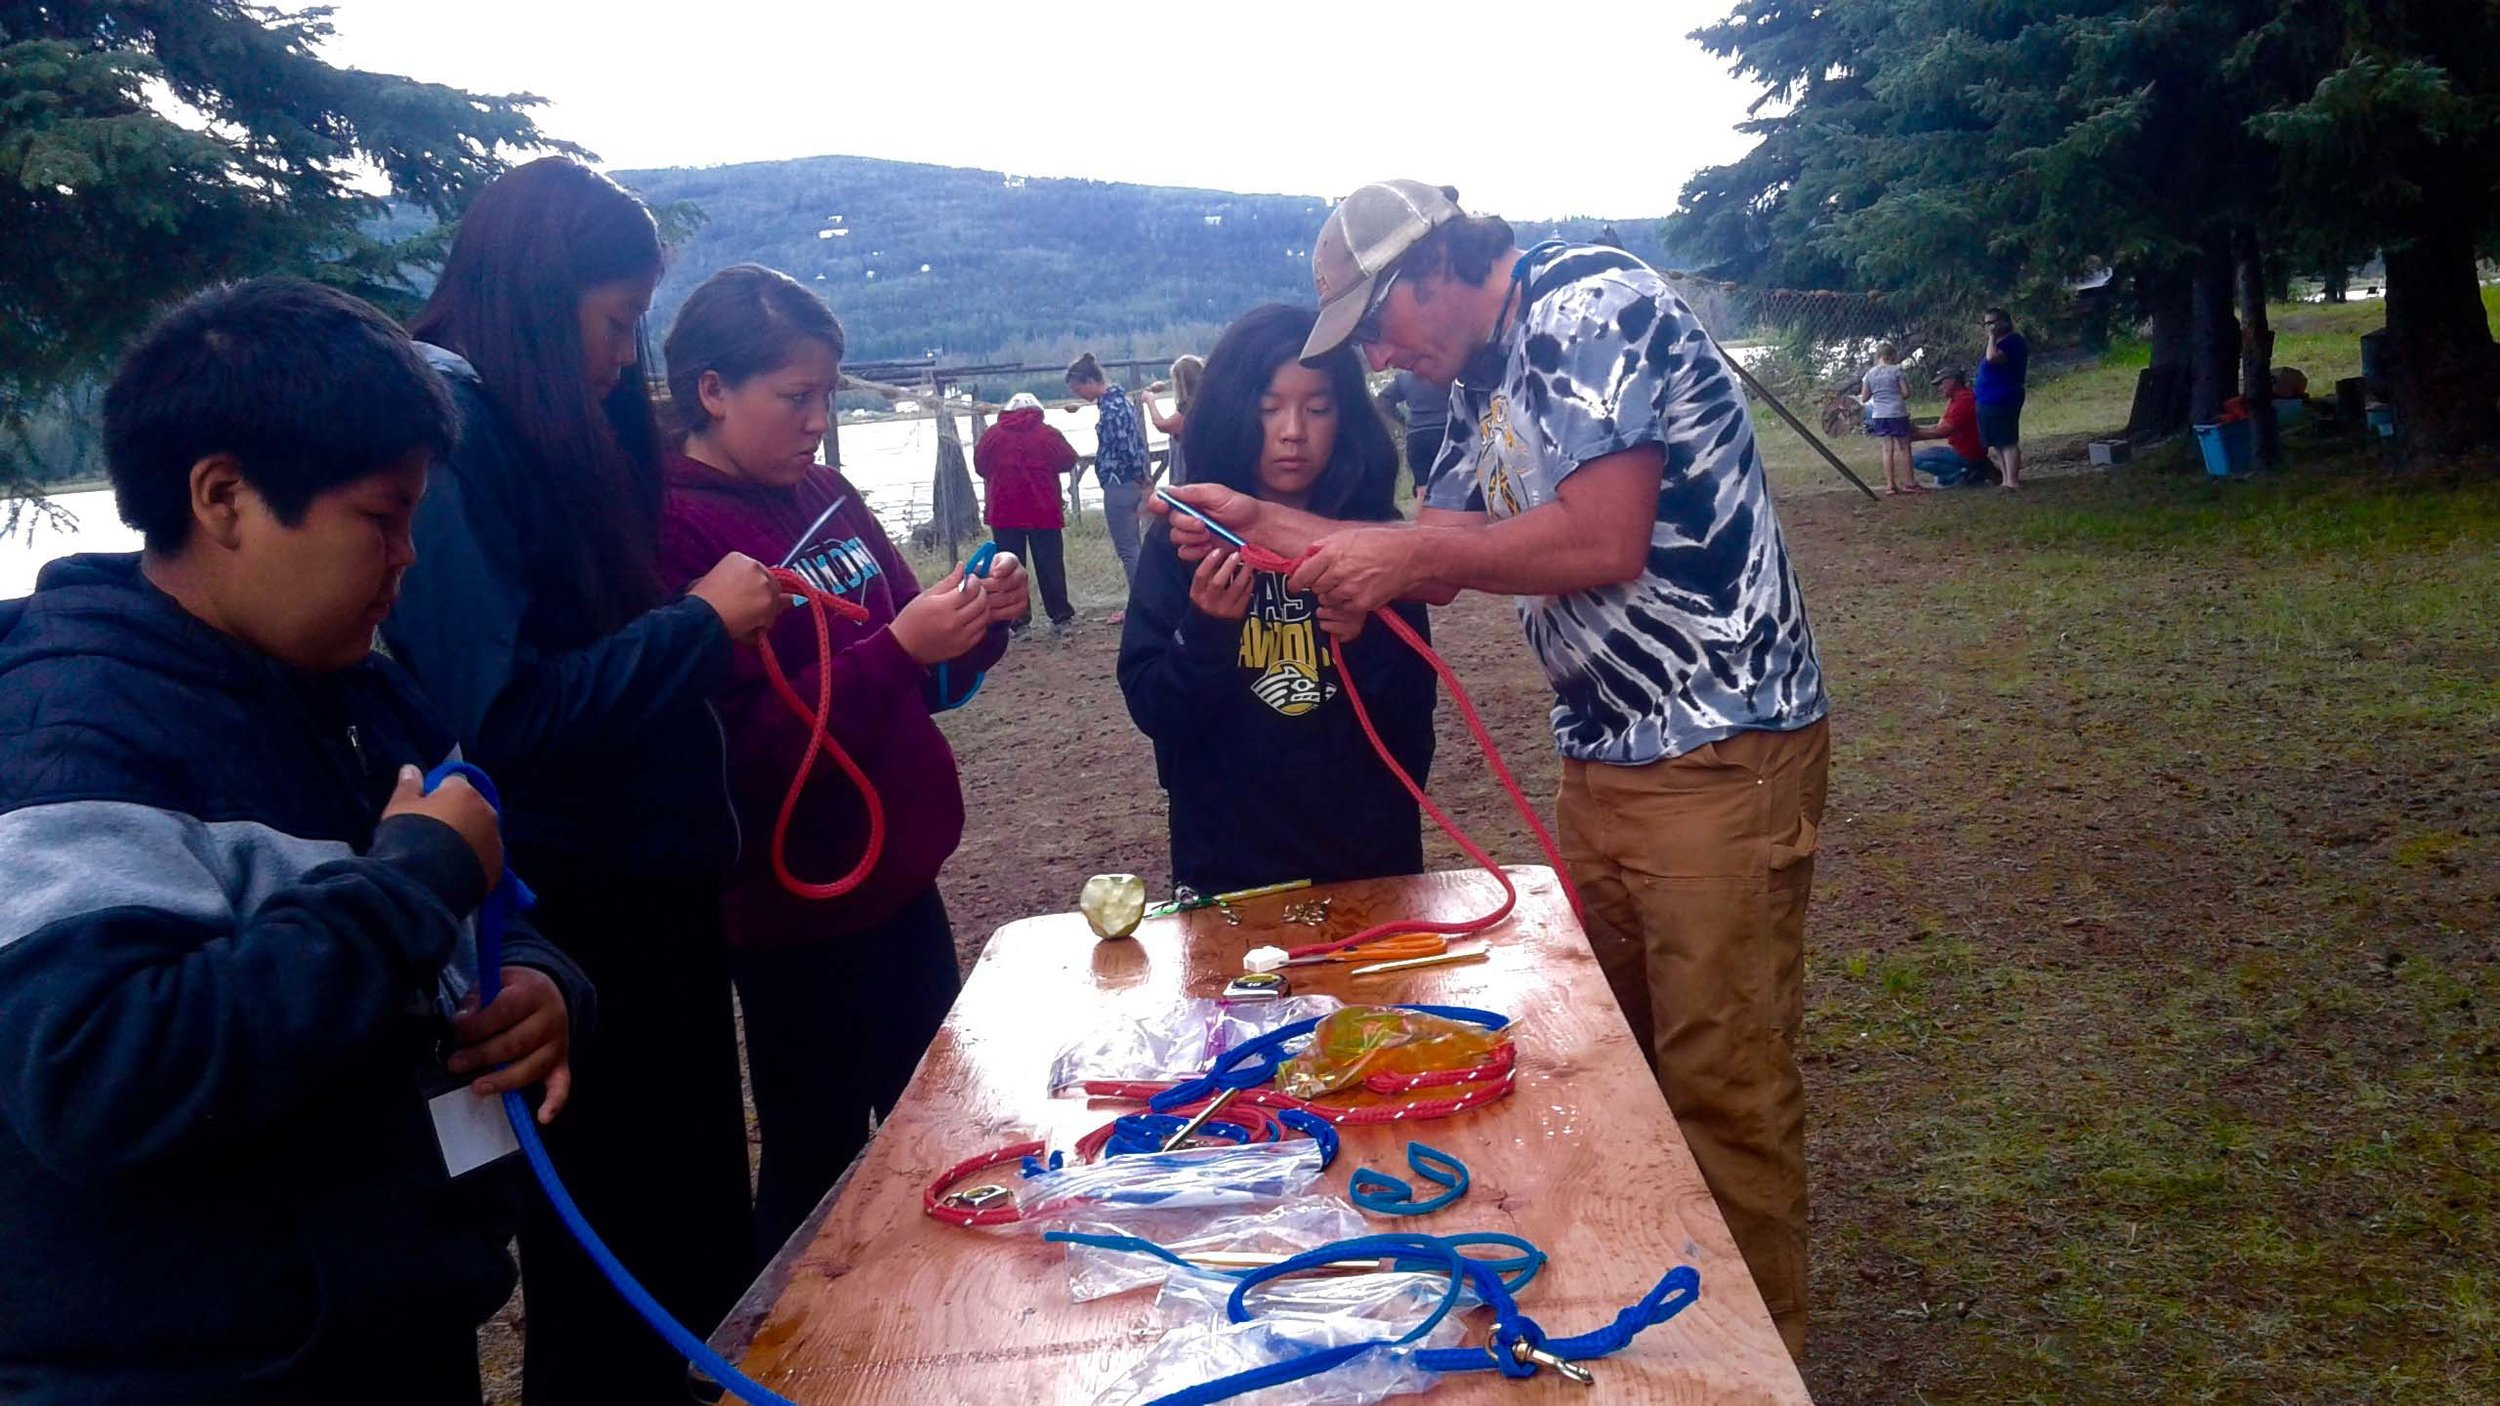 Dog musher teacher shows students how to make lines.